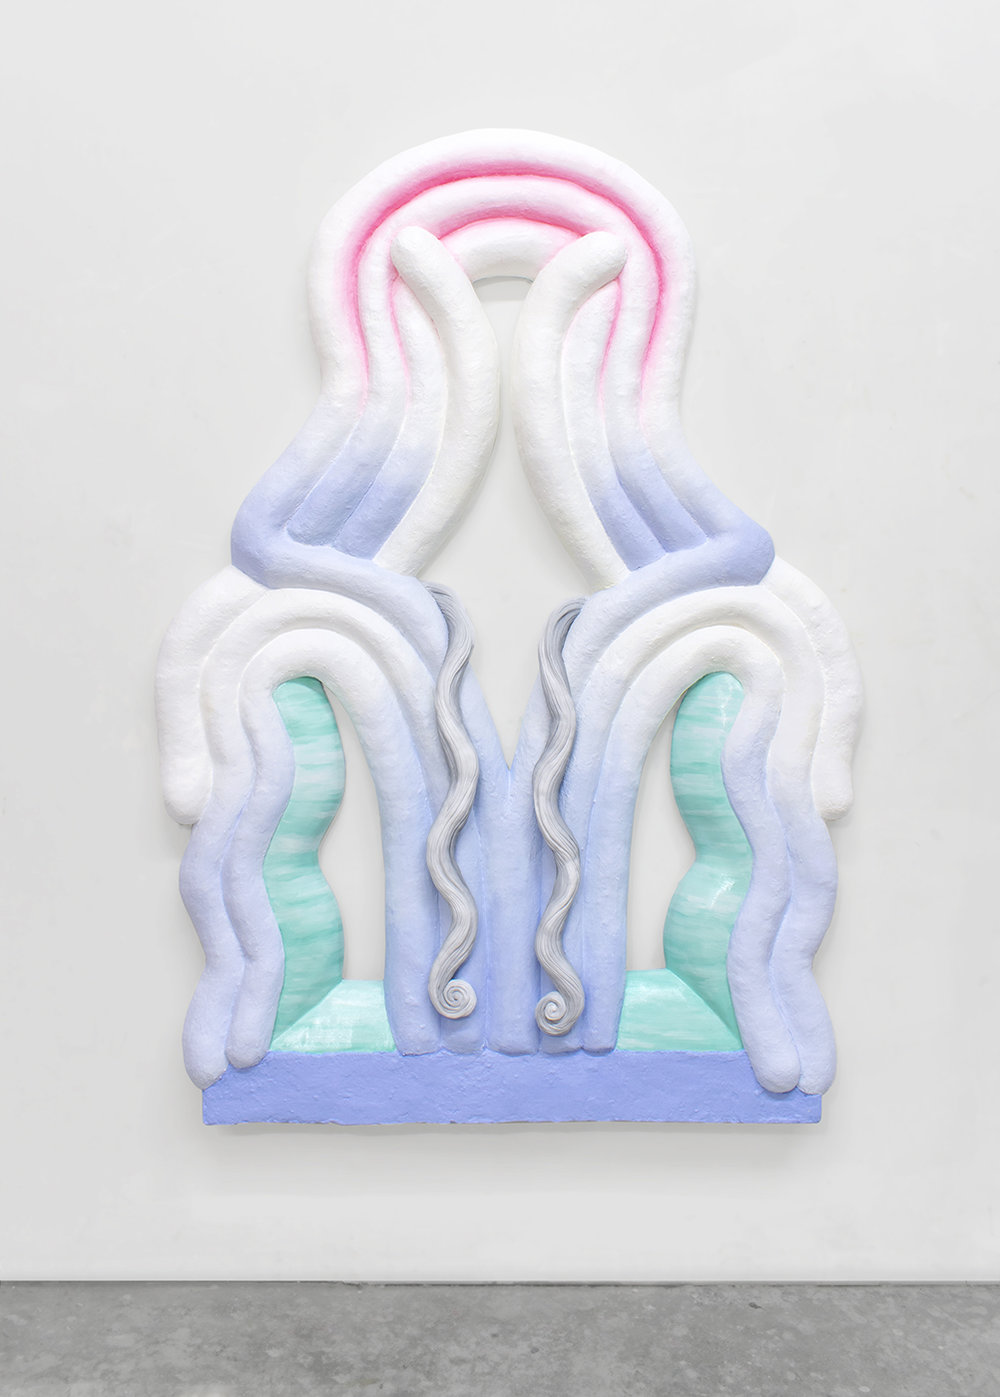 Double wavy window , 2018 oil, paper pulp and plaster on panel, 65 x 47 x 5 inches